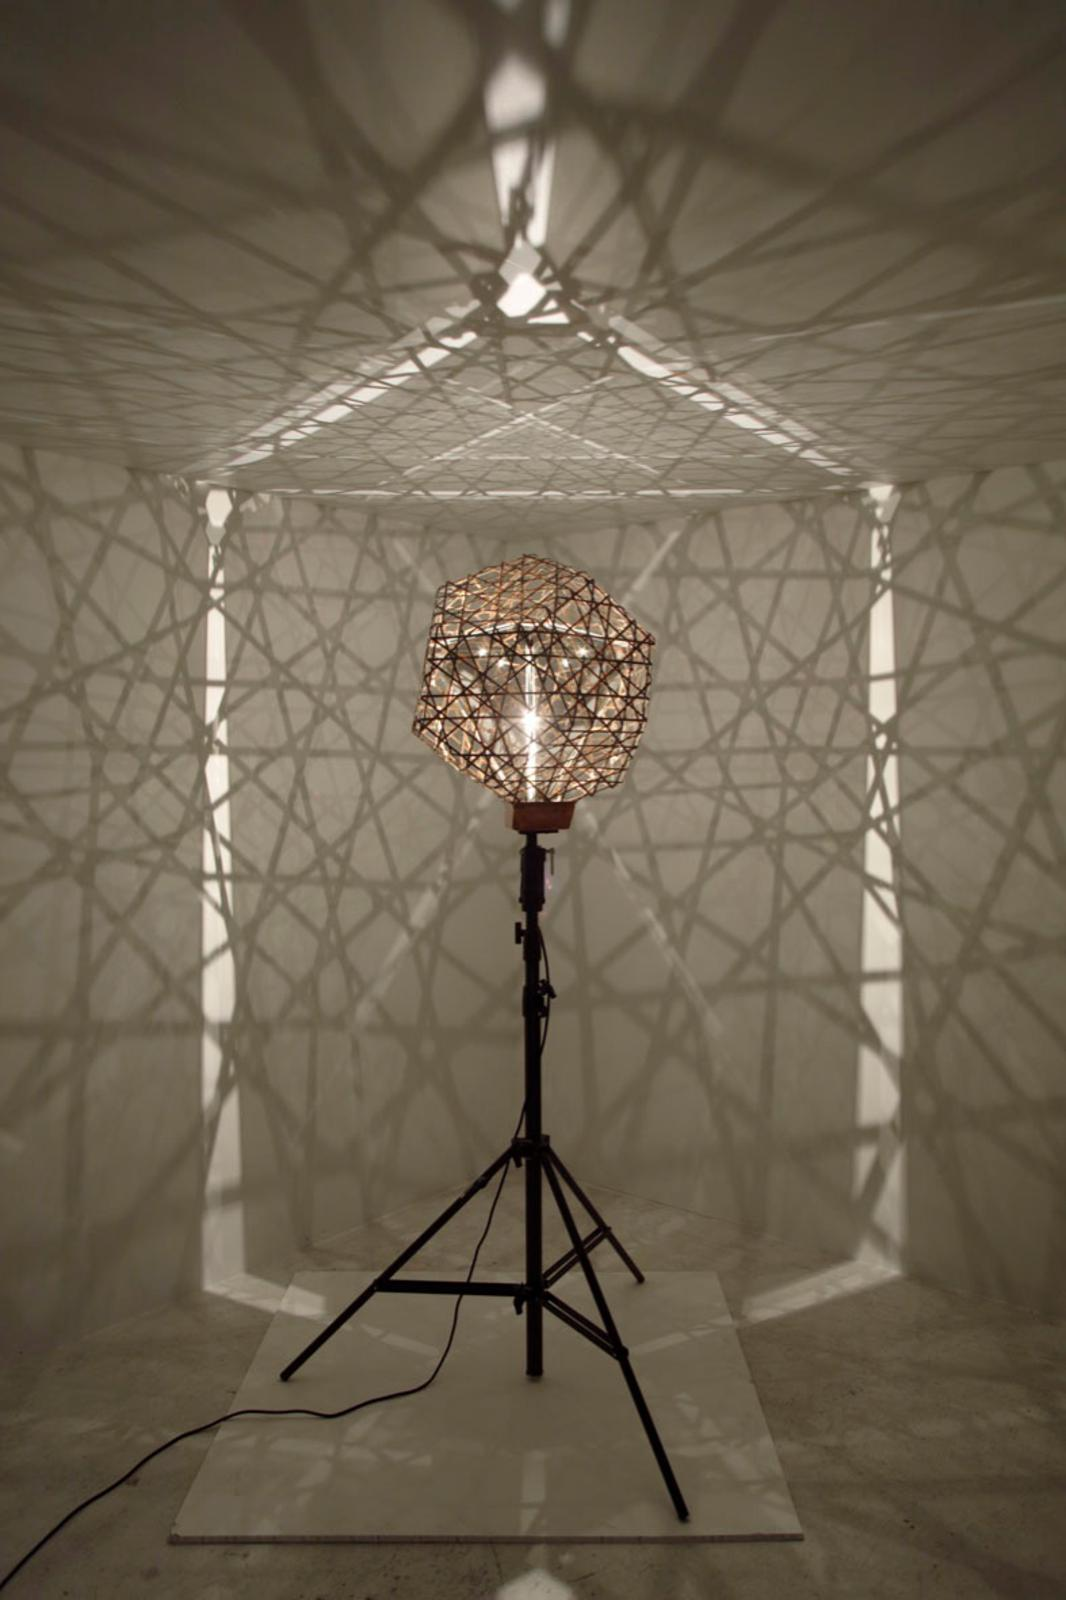 Fivefold dodecahedron  Artwork  Studio Olafur Eliasson